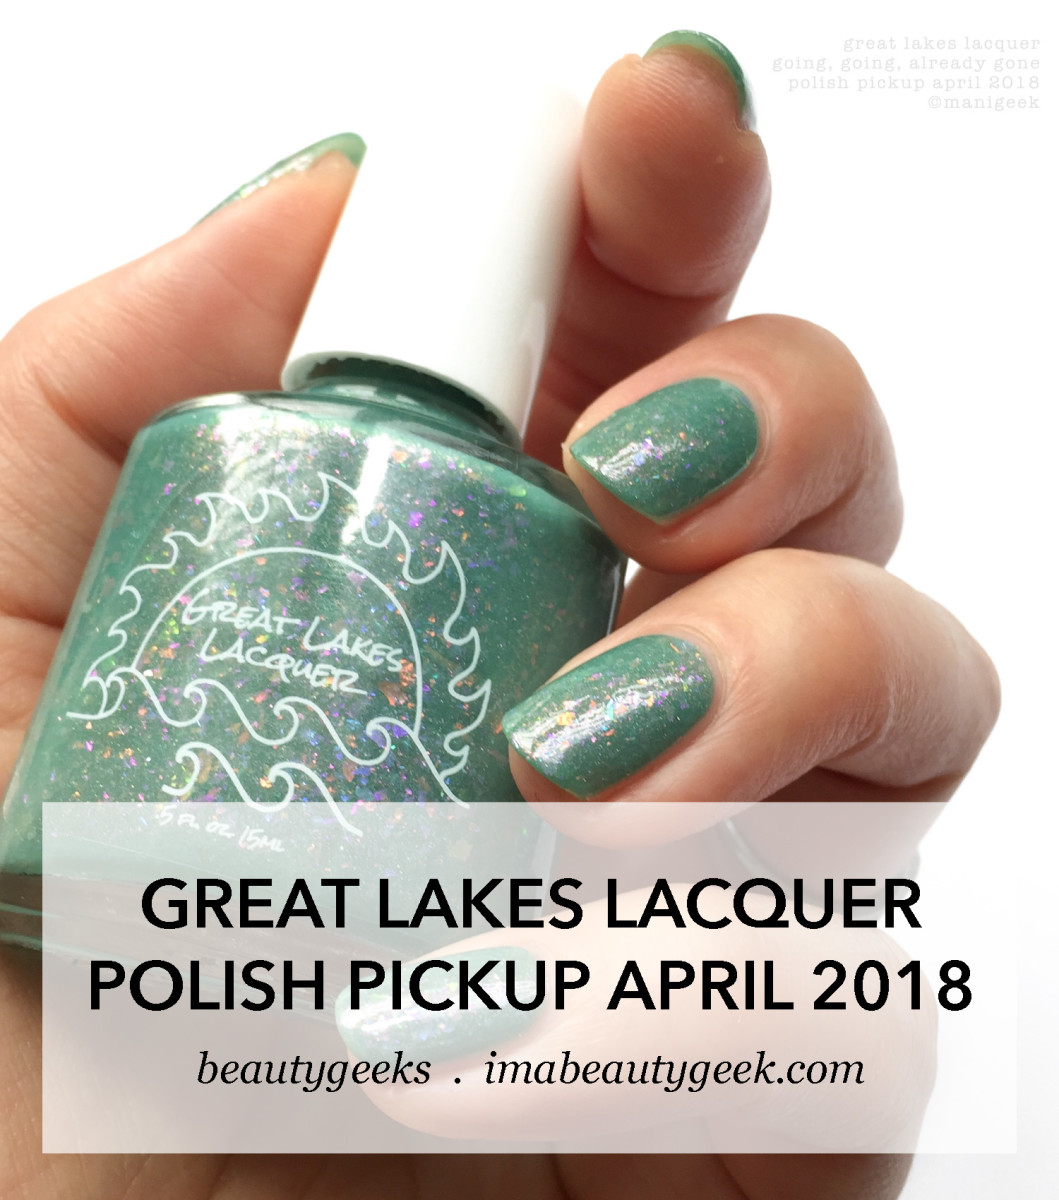 Great Lakes Lacquer Going Going Already Gone _ Polish Pickup April 2018 Space Theme